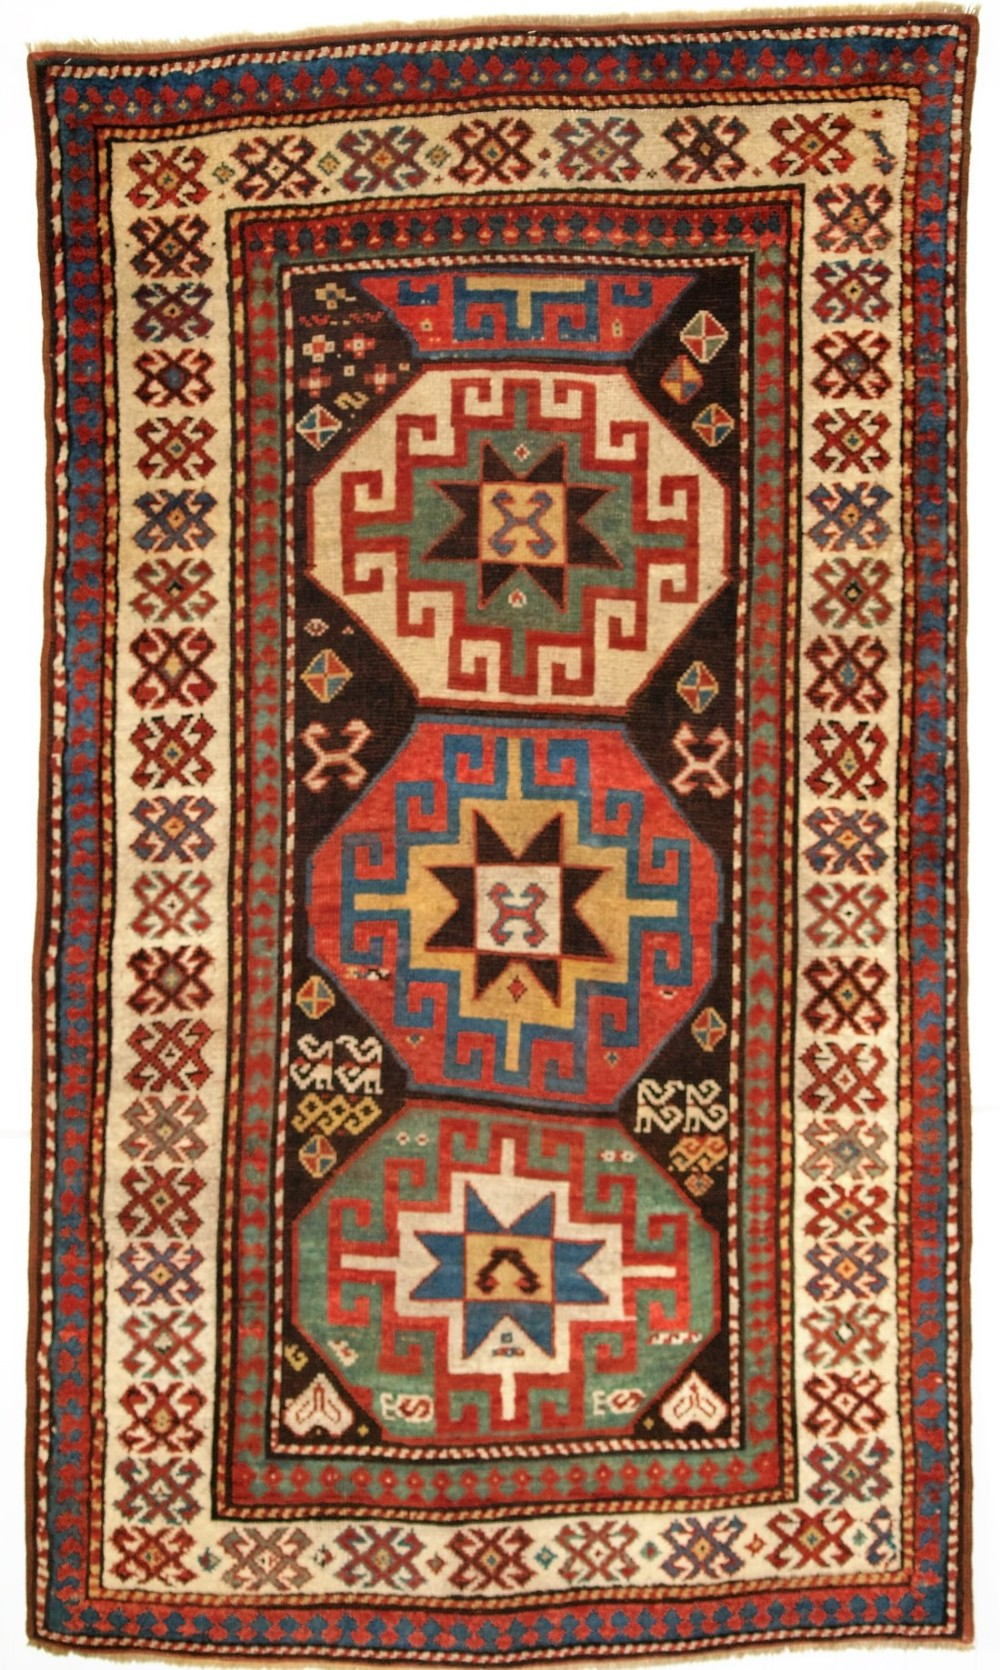 antique caucasian kazak rug with memlinc guls within octagons superb colour 2nd half 19th century